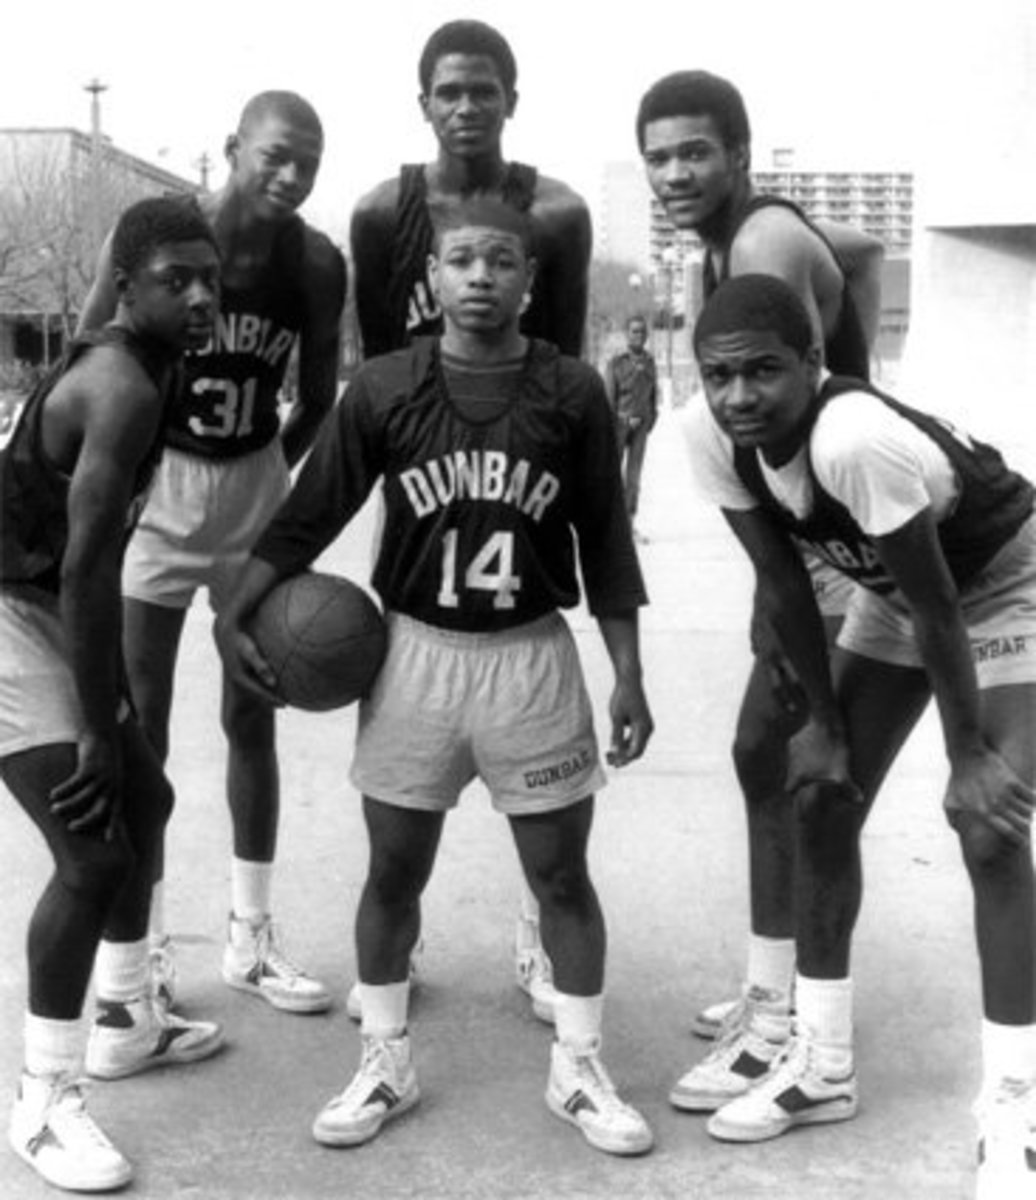 1984 Dunbar Poets (from left to right)  Darryl Wood, Reggie Lewis, Reggie Williams, Tim Dawson, Jerry White. (Center) Muggsy Bouges